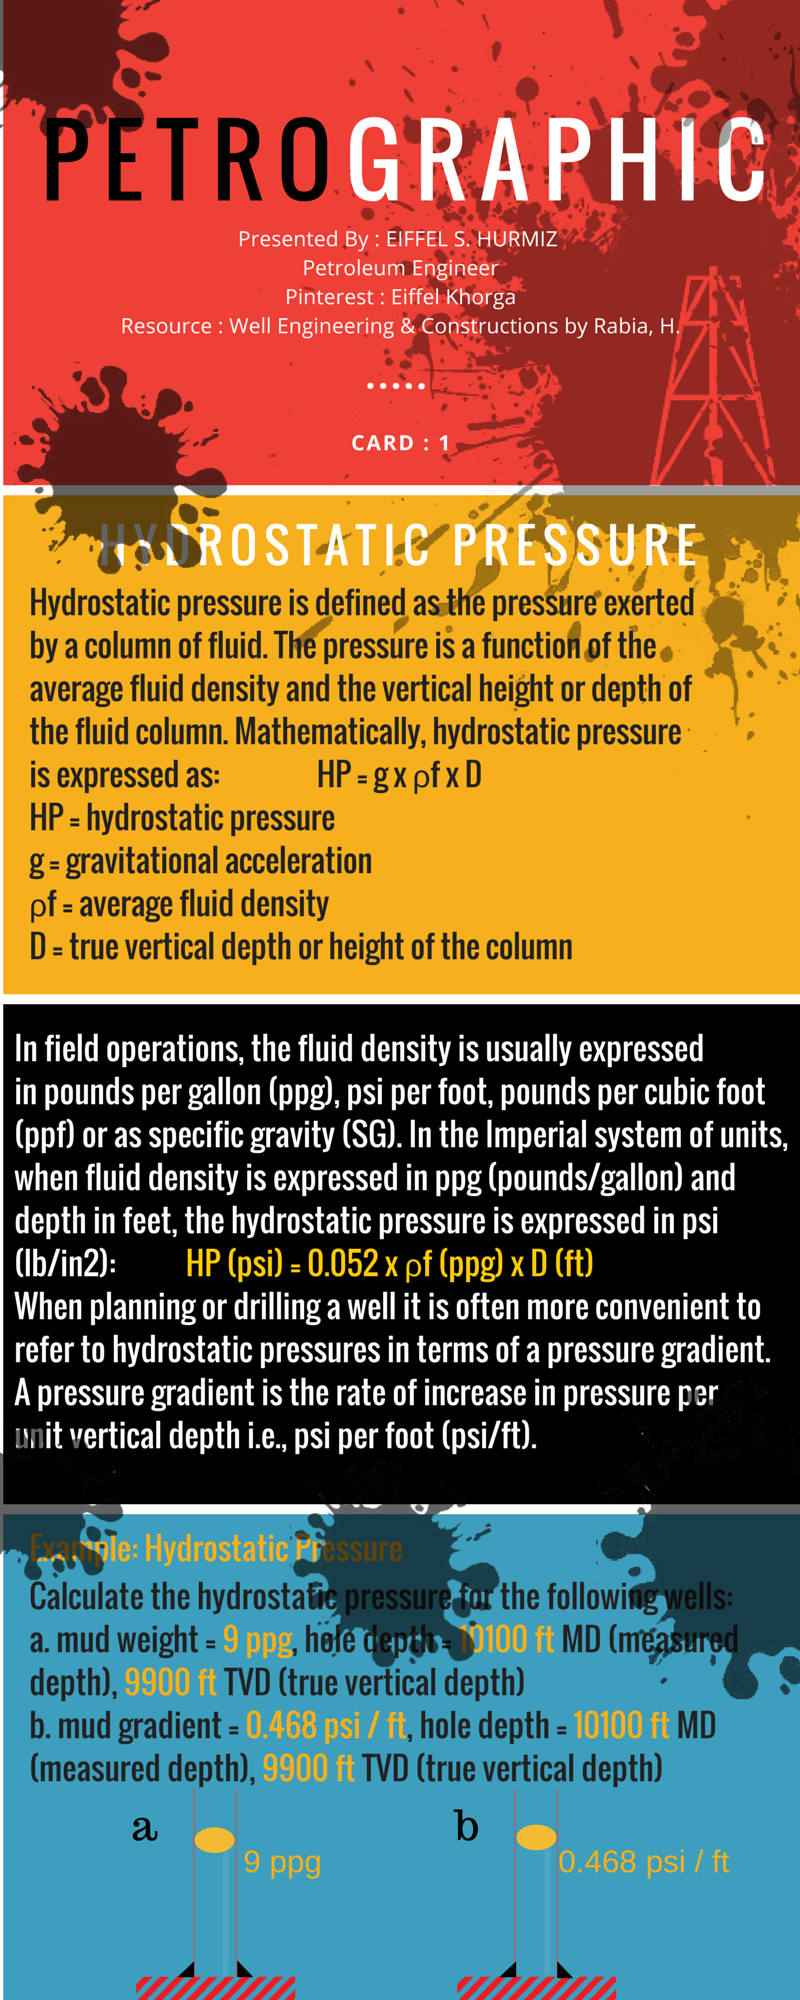 Hydrostatic pressure | Petrographic | Movie posters, Science